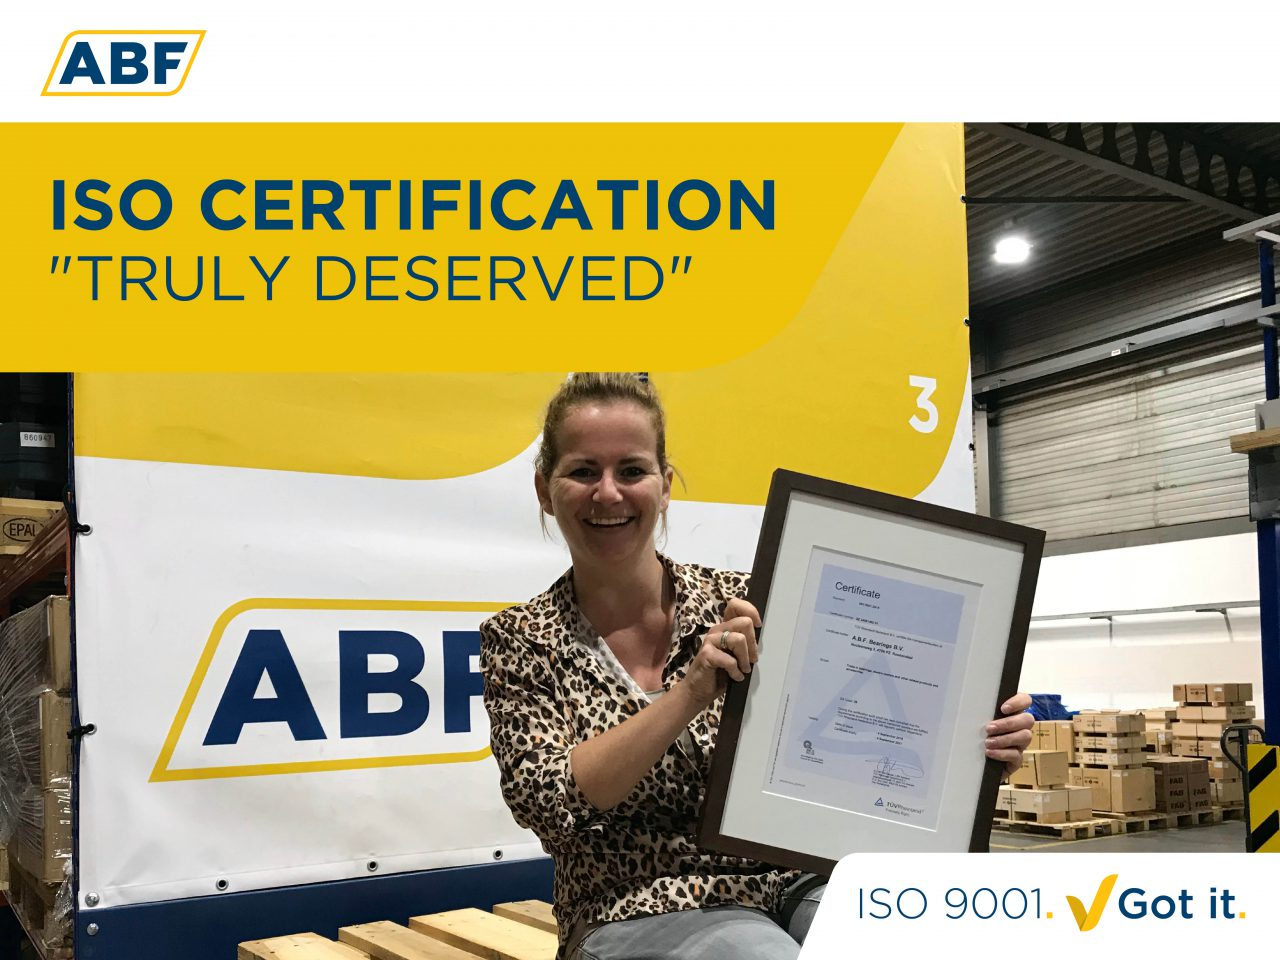 """ABF's ISO Certification truly deserved"""